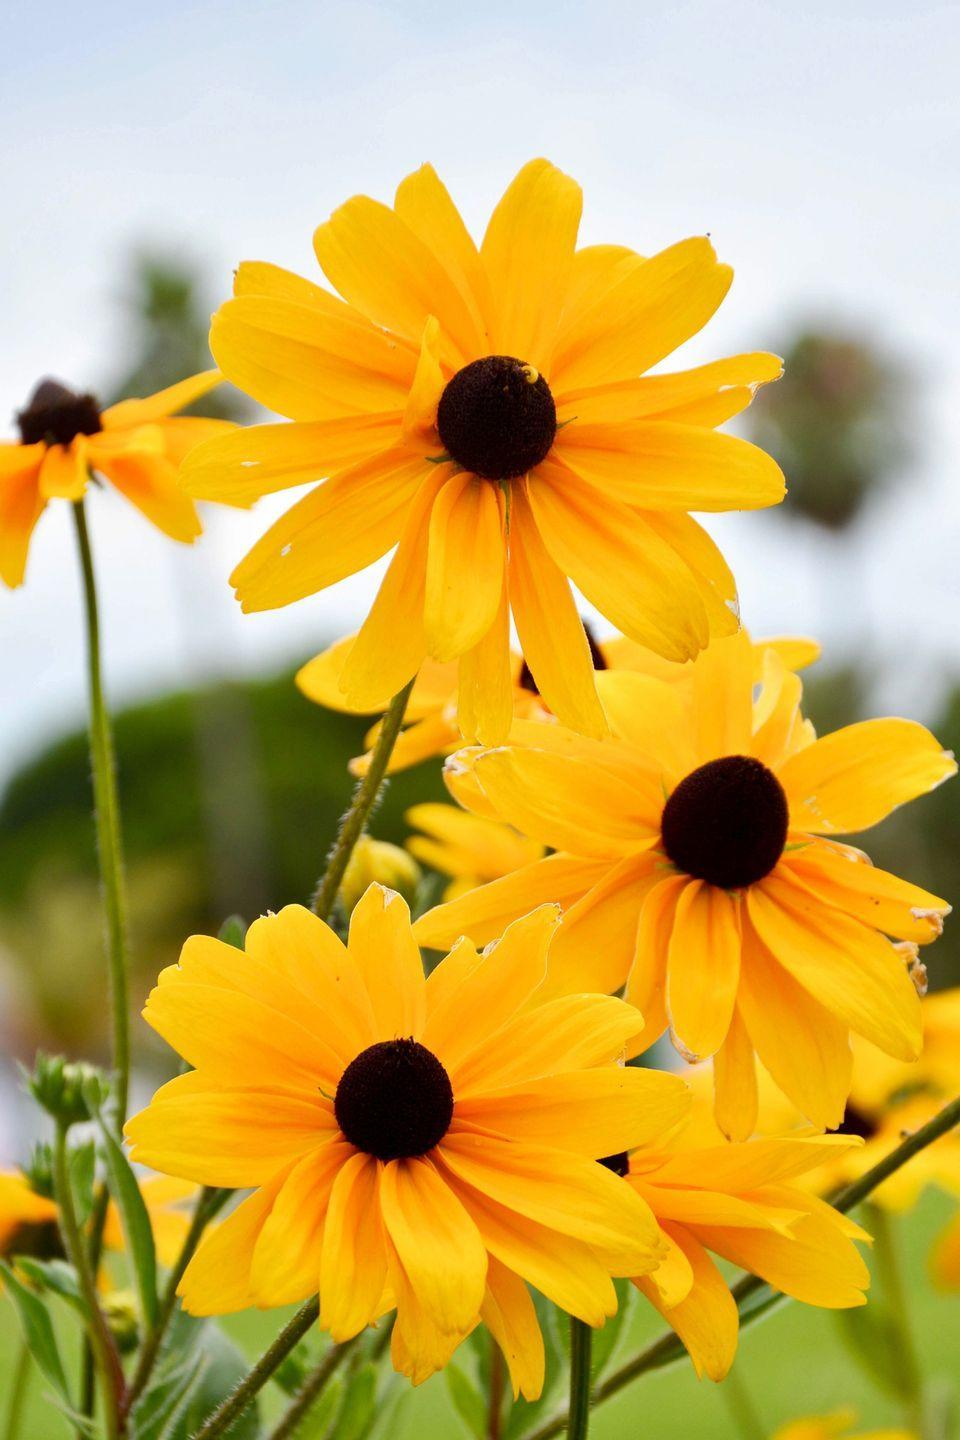 """<p>Related to sunflowers, this yellow flowering plant in a native wildflower. Sun-loving and drought tolerant, these flowers bloom starting in the summer and into the fall months.<br></p><p><a class=""""link rapid-noclick-resp"""" href=""""https://www.amazon.com/Black-Eyed-Rudbeckia-Pollinated-Seed-Needs/dp/B01MPZV0H4/ref=sr_1_2?tag=syn-yahoo-20&ascsubtag=%5Bartid%7C10050.g.32157369%5Bsrc%7Cyahoo-us"""" rel=""""nofollow noopener"""" target=""""_blank"""" data-ylk=""""slk:SHOP NOW"""">SHOP NOW</a></p>"""